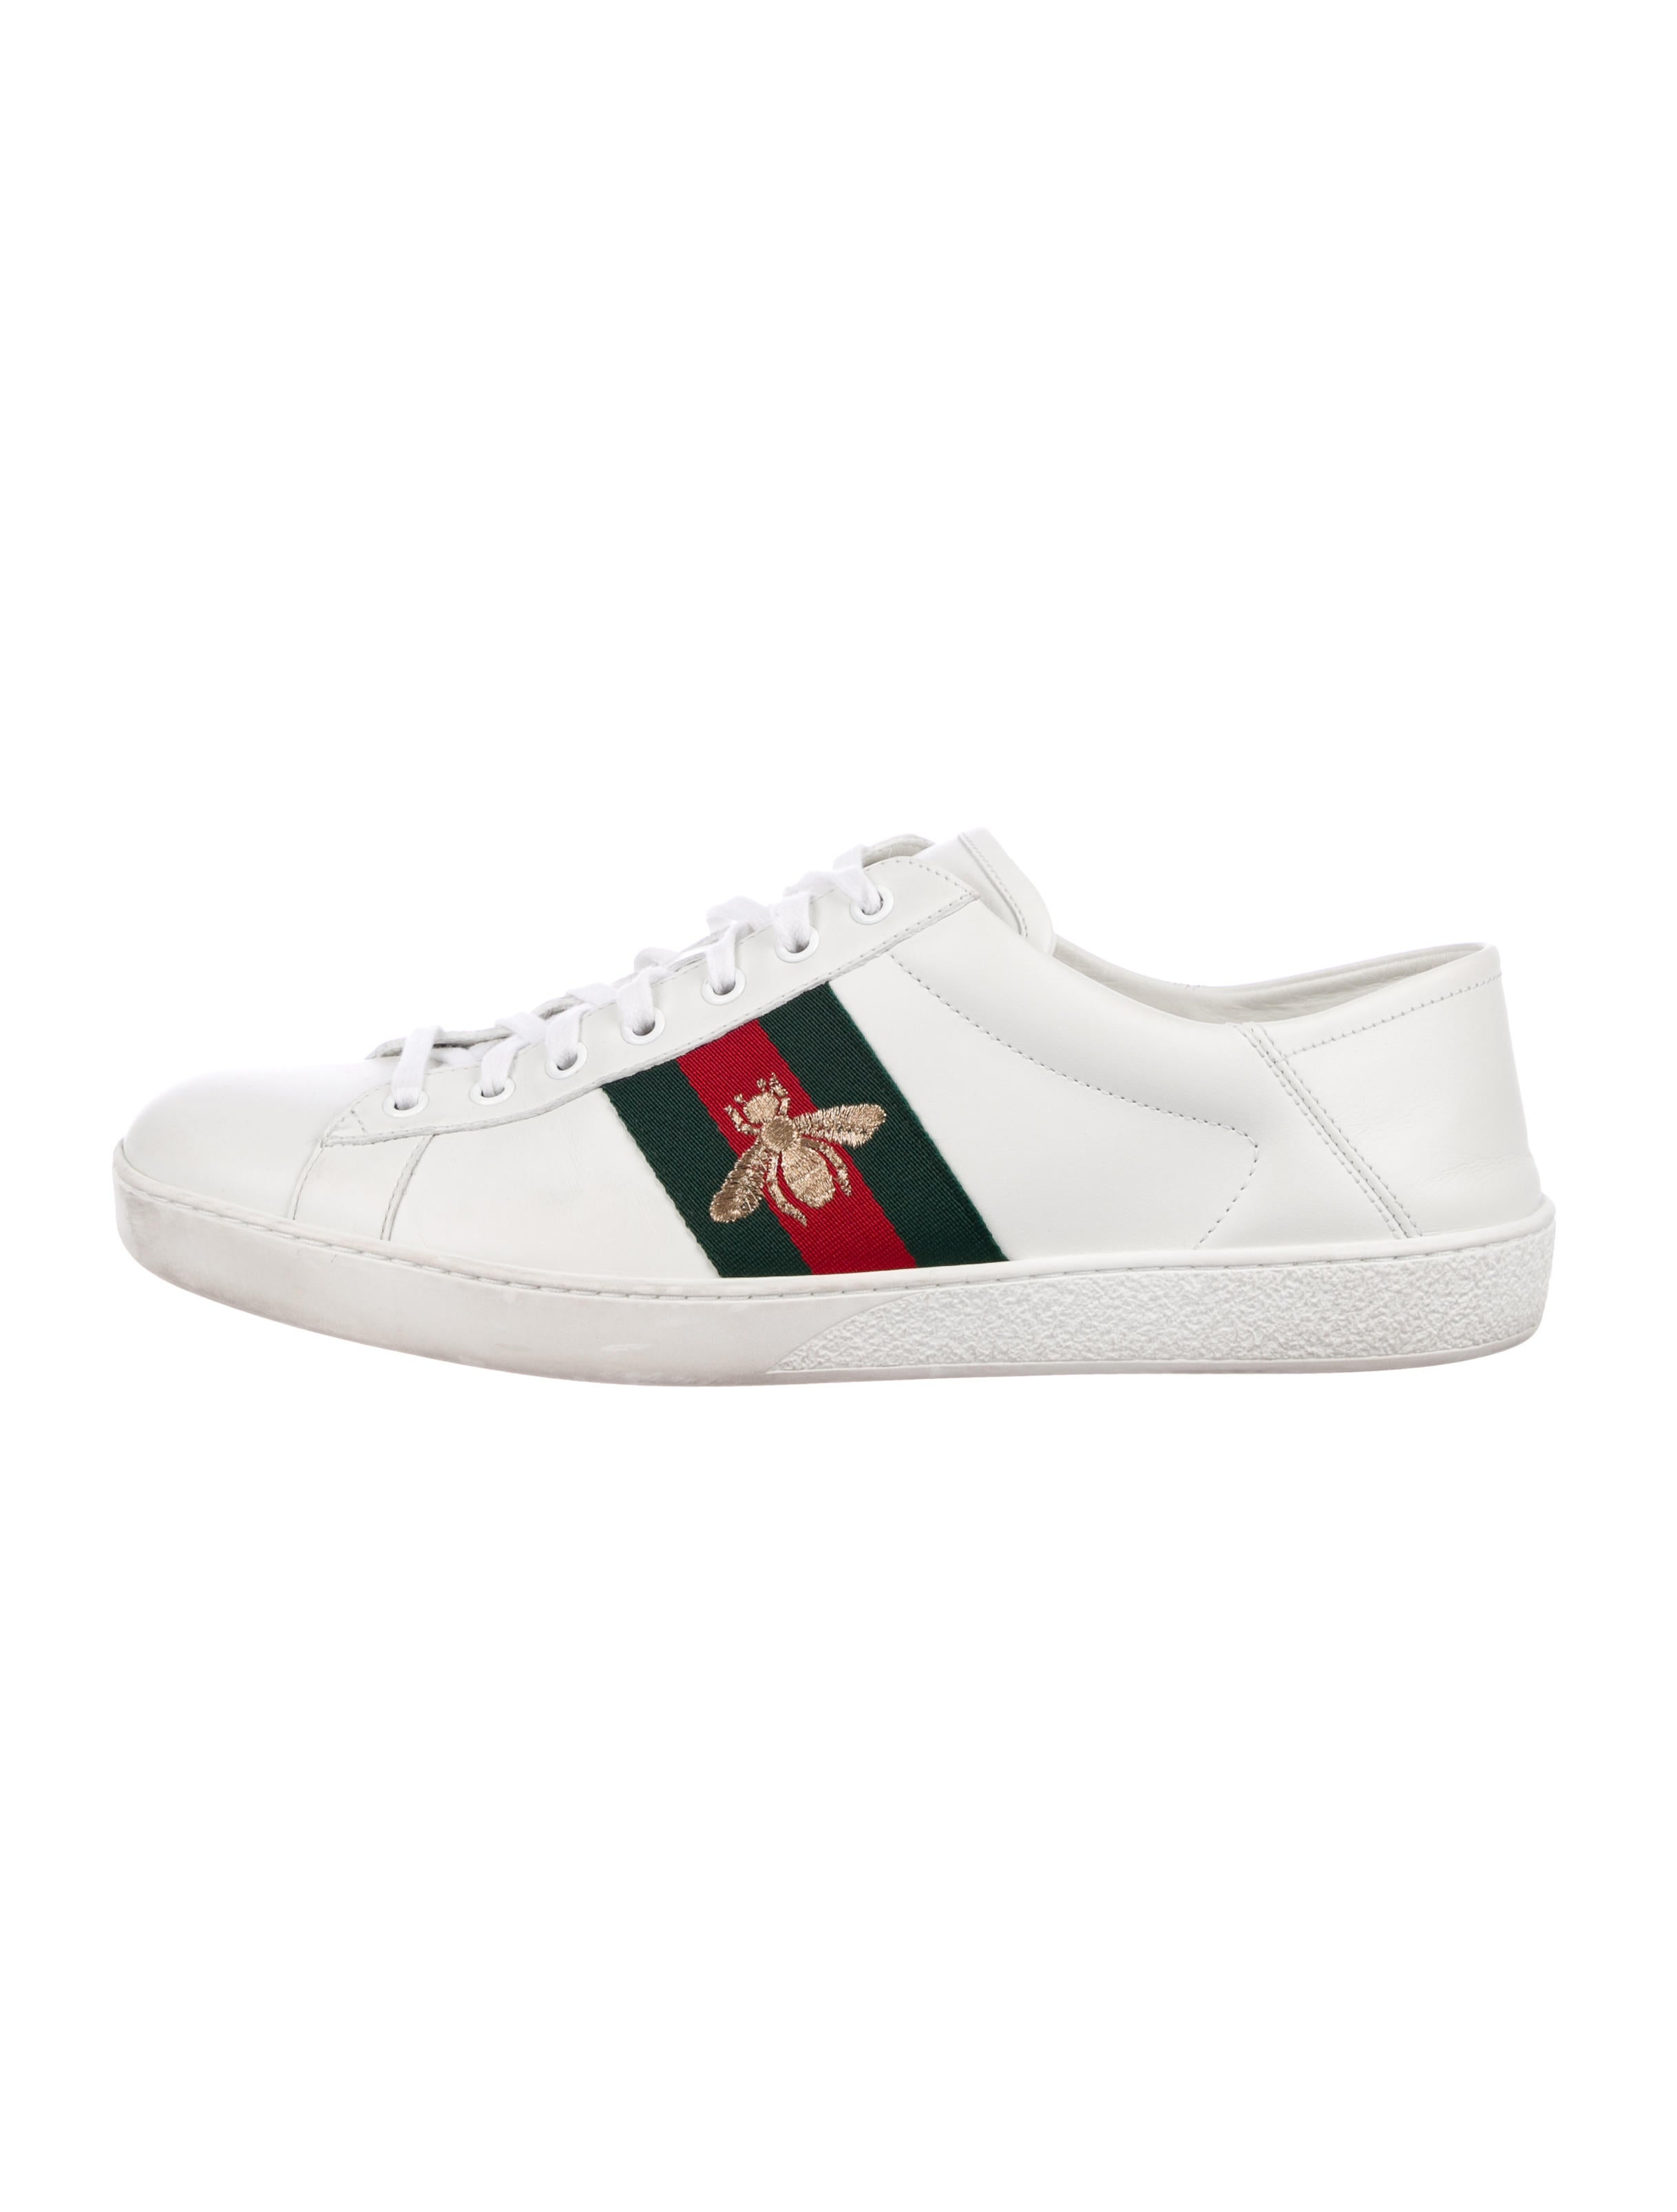 93e2d9e2 Gucci Shoes | The RealReal